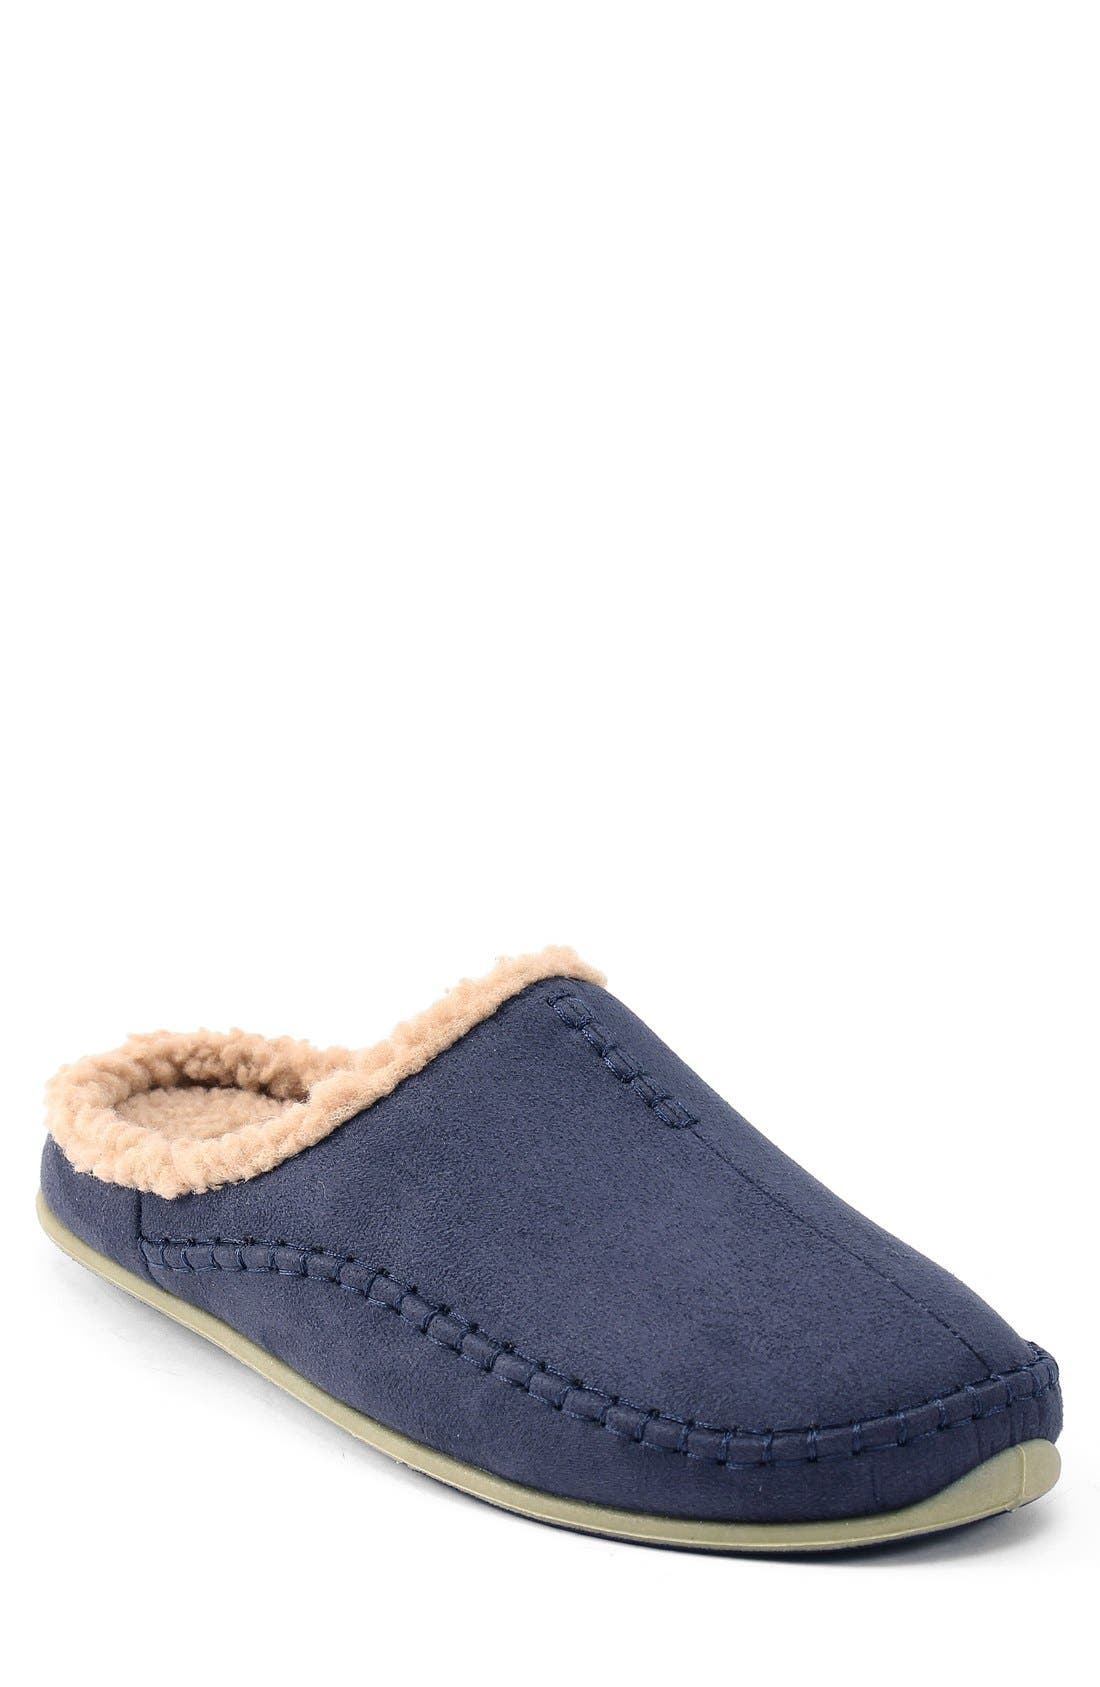 'Nordic' Slipper,                             Main thumbnail 1, color,                             Navy Microsuede